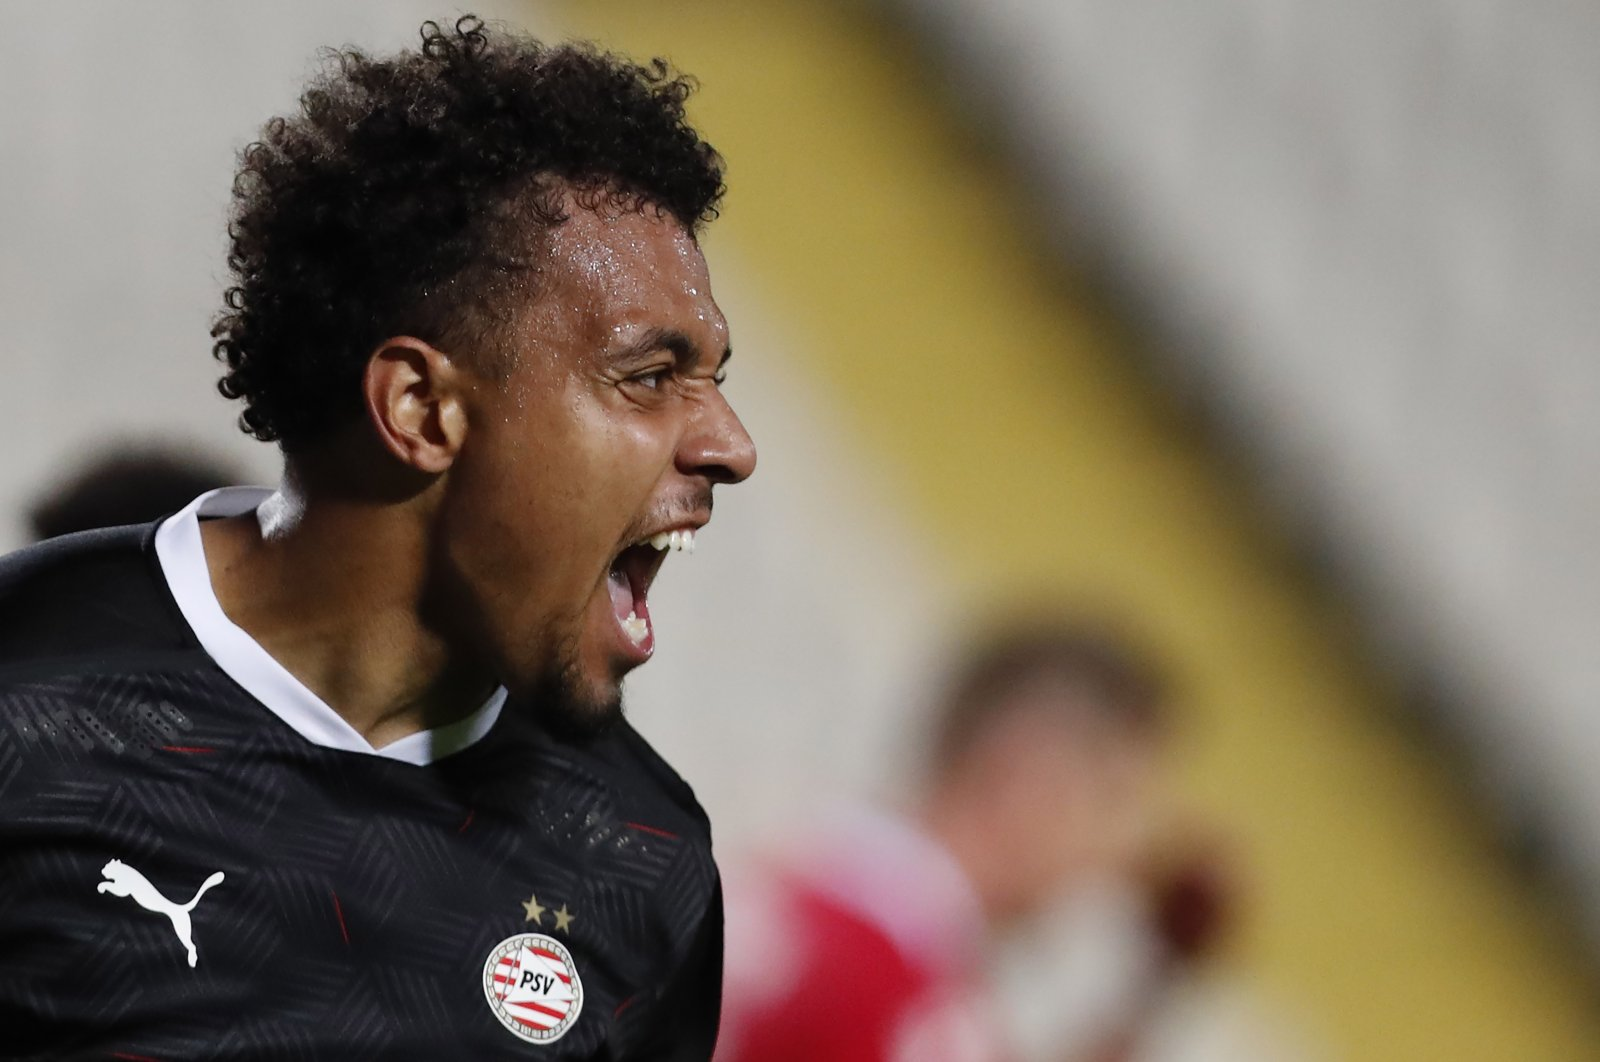 PSV's Donyell Malen celebrates his second goal against Omonia during the Europa League Group E match at GSP stadium in Nicosia, Cyprus, Oct. 29, 2020. (AP Photo)